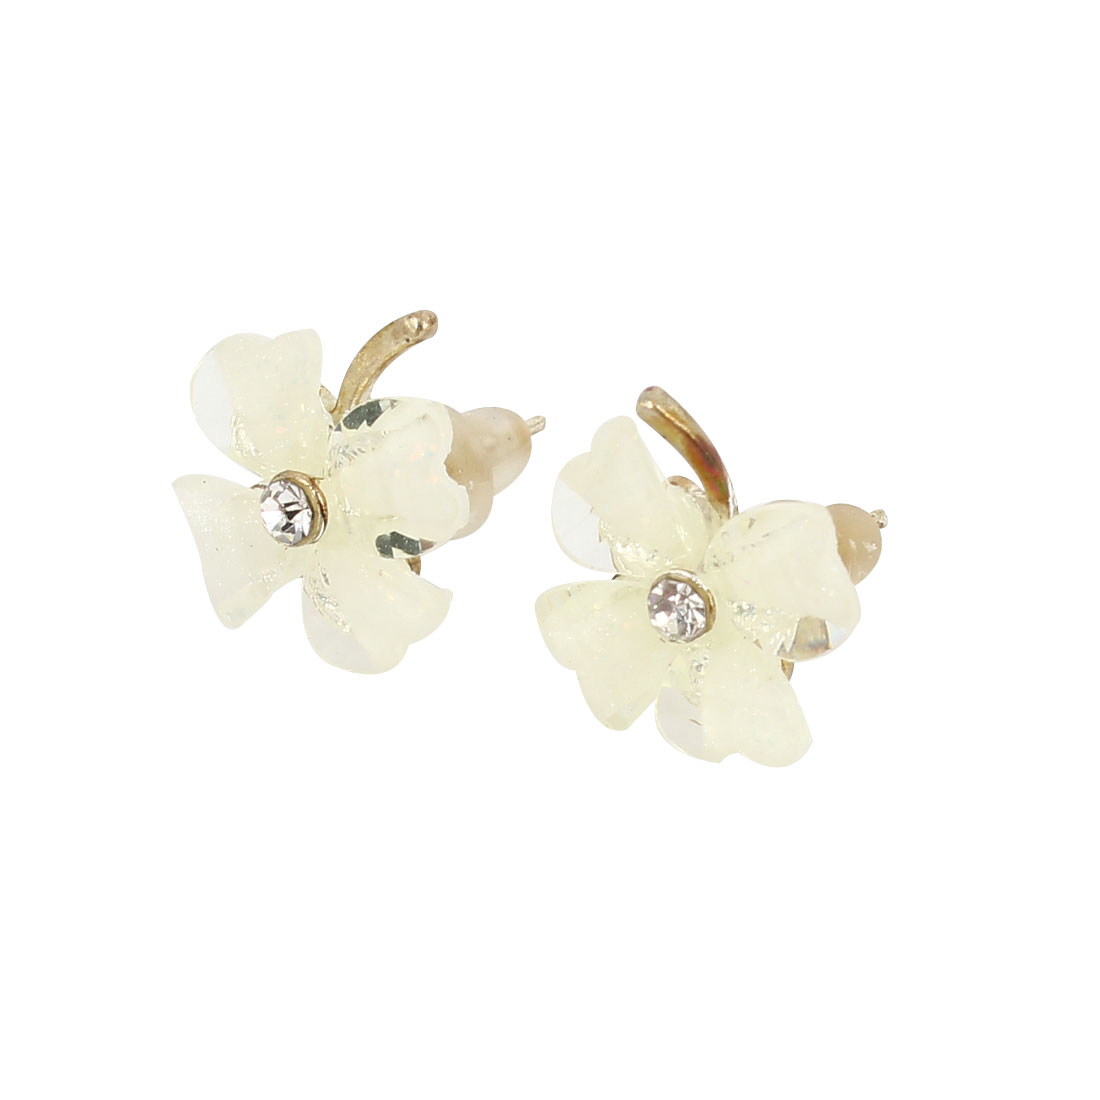 Clear Beige Clover Design Rhinestone Detailing Stud Earrings Pair for Lady